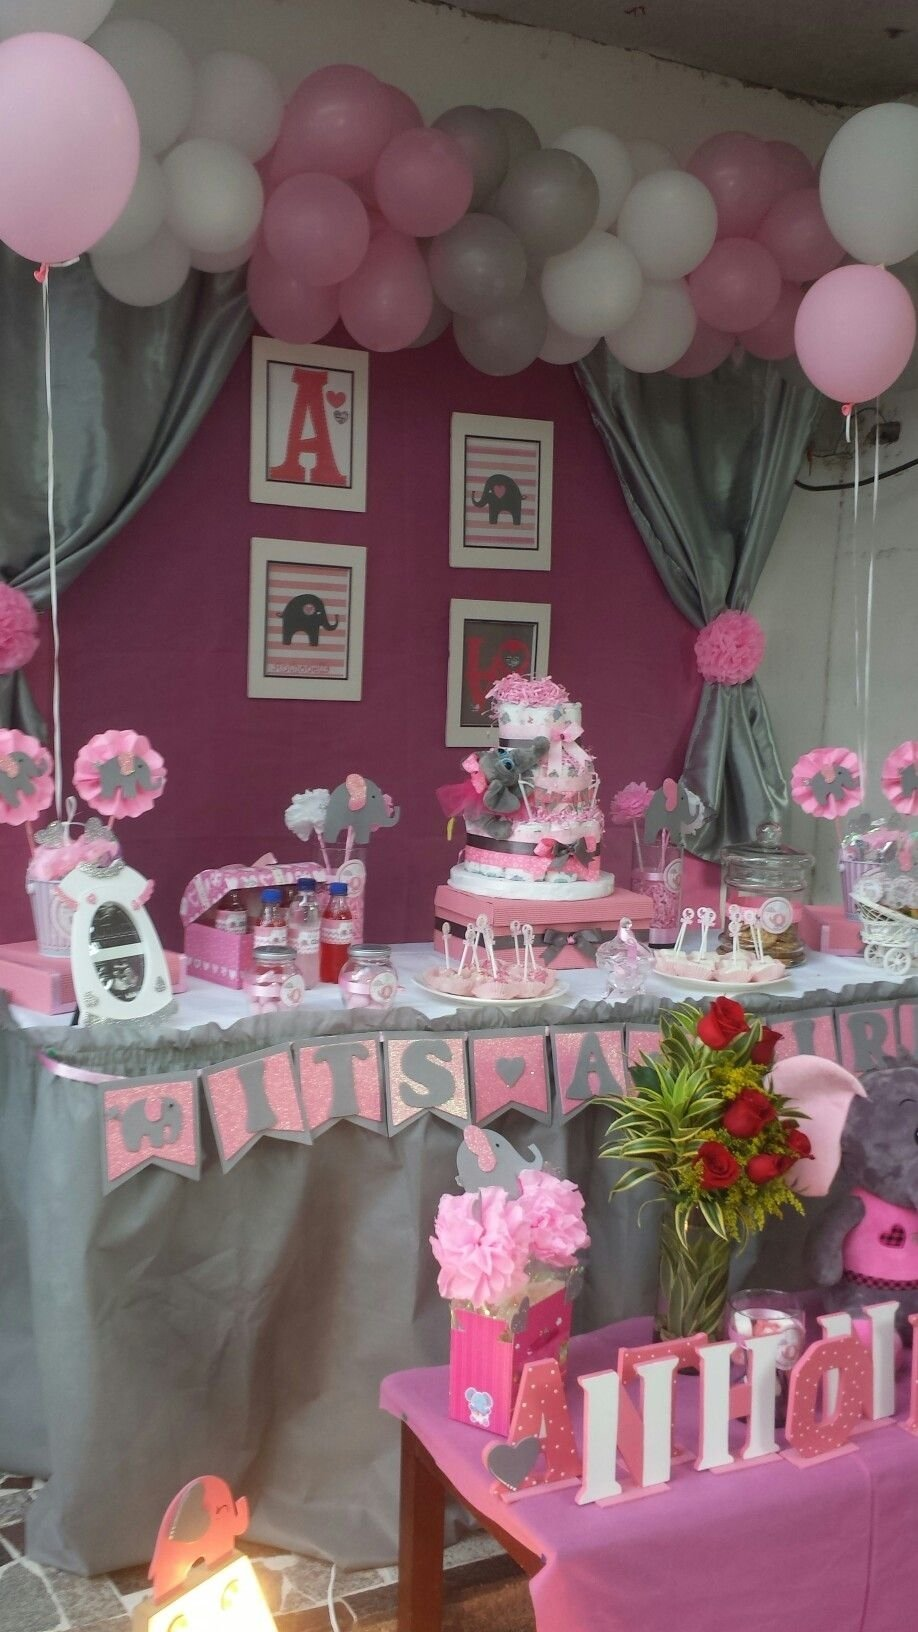 10 Stylish Pink And Gray Baby Shower Ideas elephant pink and grey baby shower pinteres 8 2020